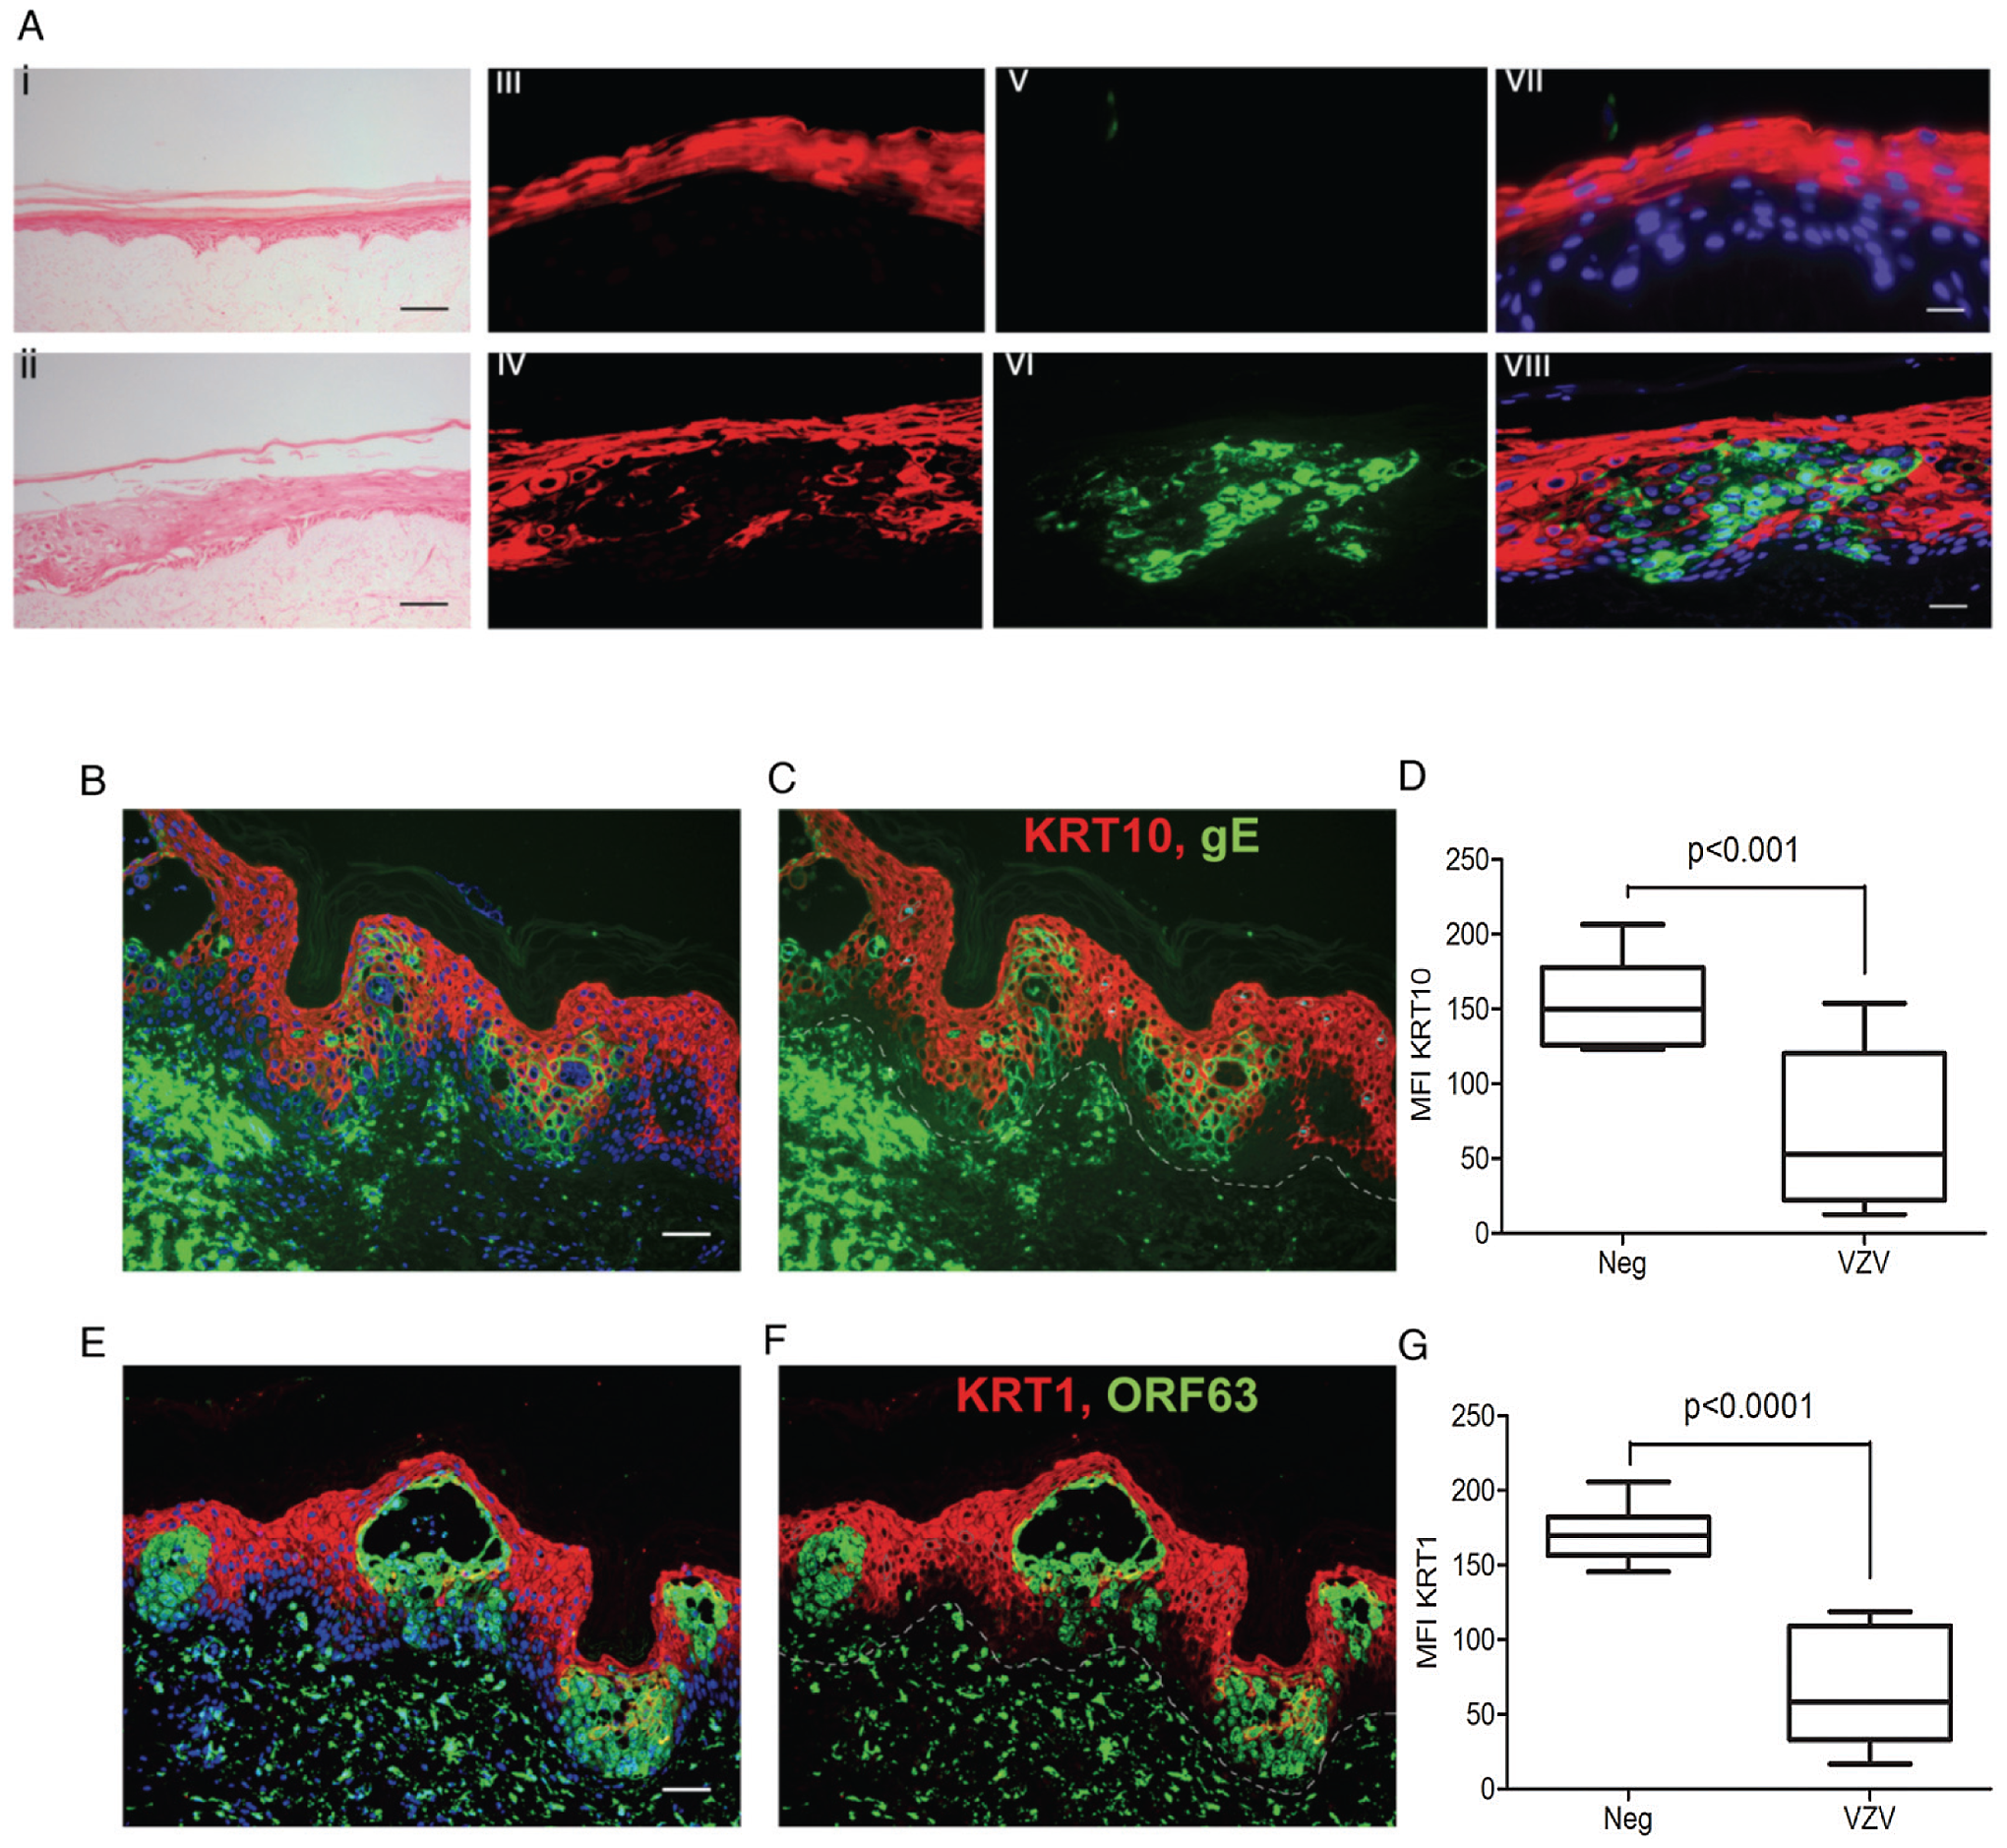 VZV downregulated <i>KRT1/10</i> expression in the epidermis.